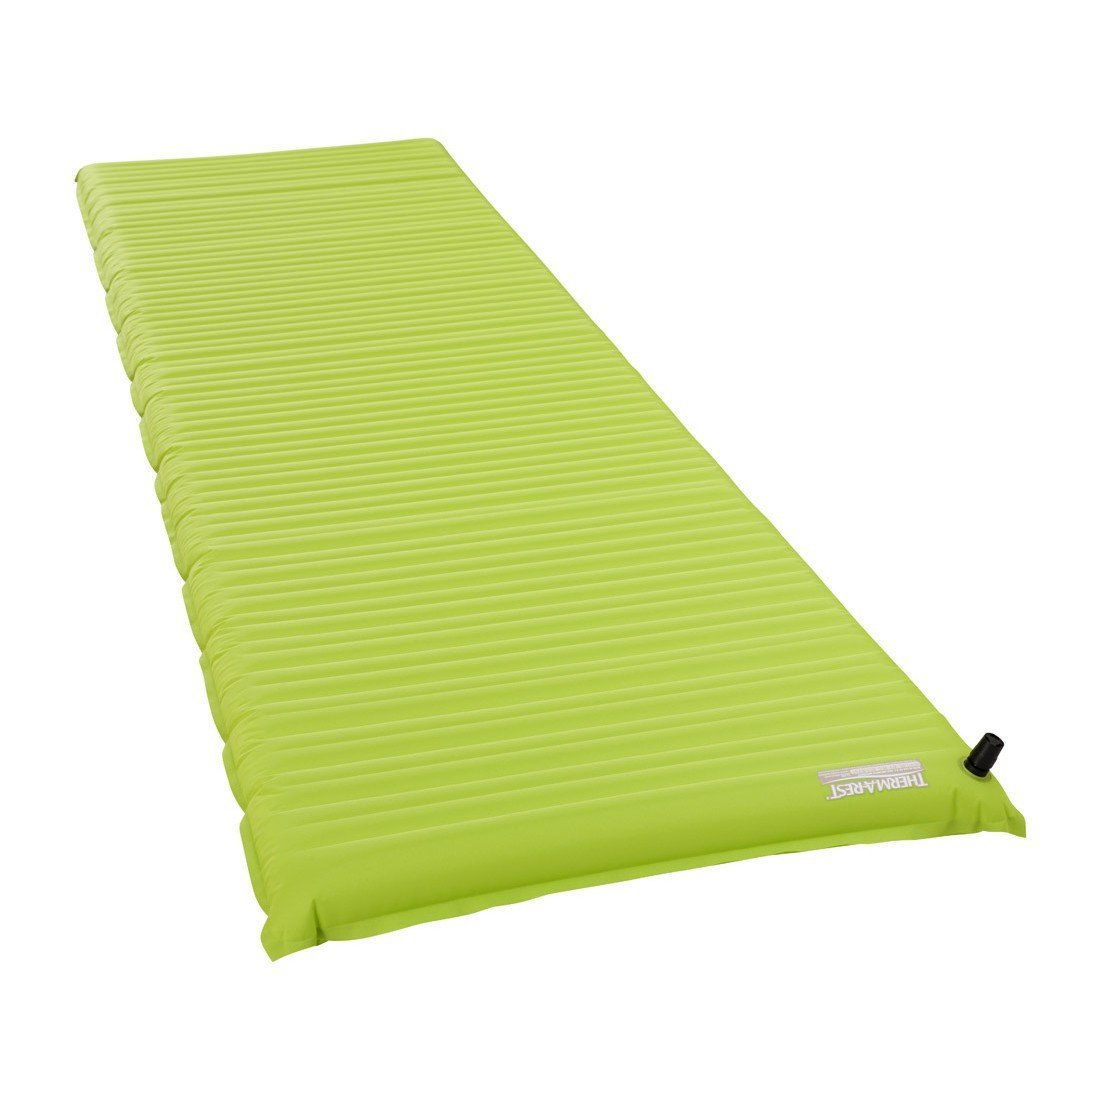 TThermarest NeoAir Venture Large camping mat, shown inflated and laid flat